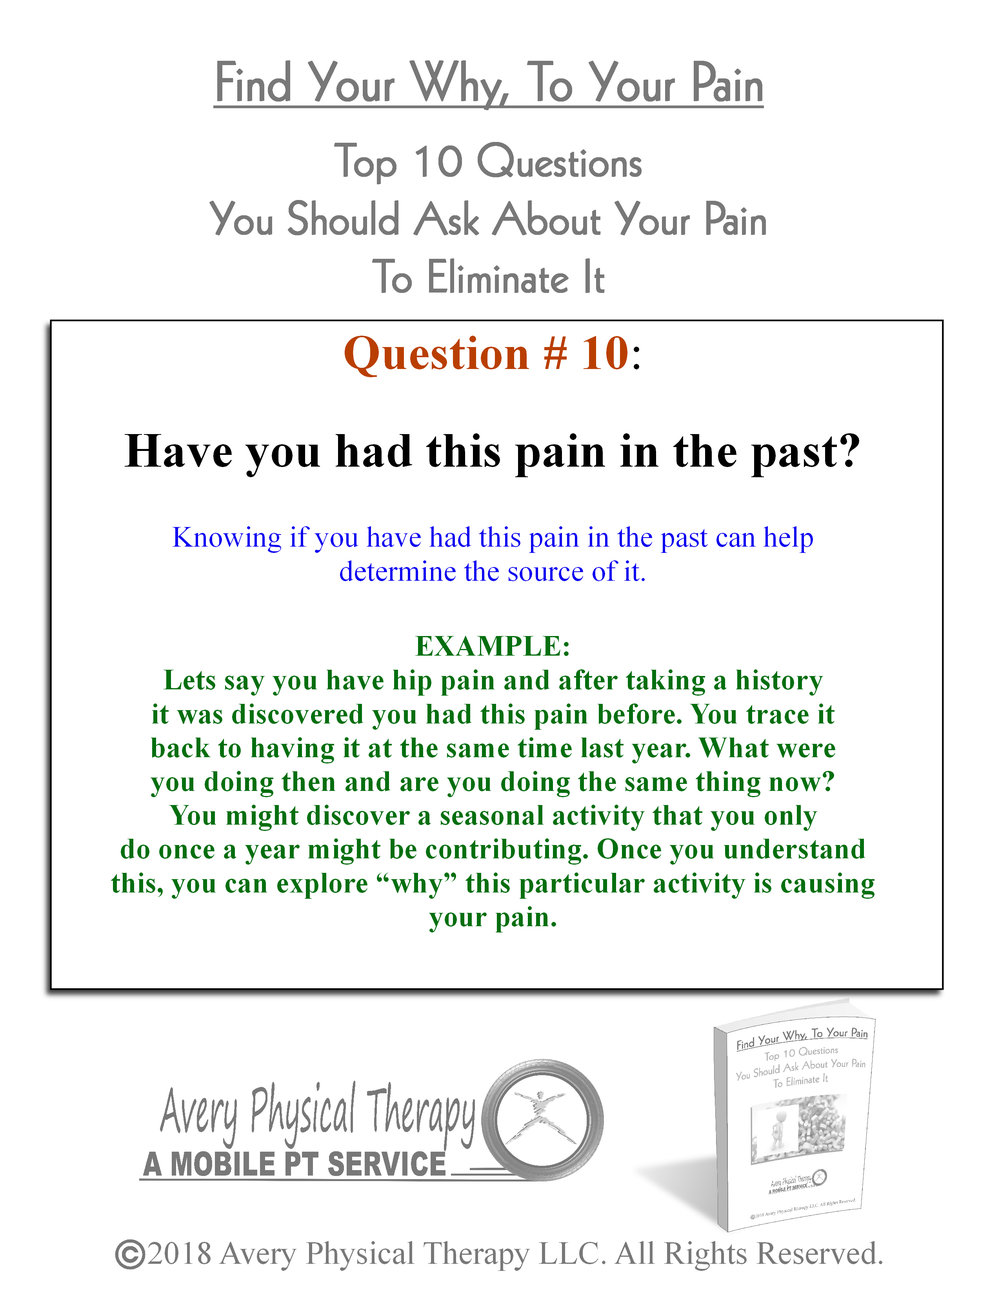 Top 10 Pain Questions 7-10H.JPG